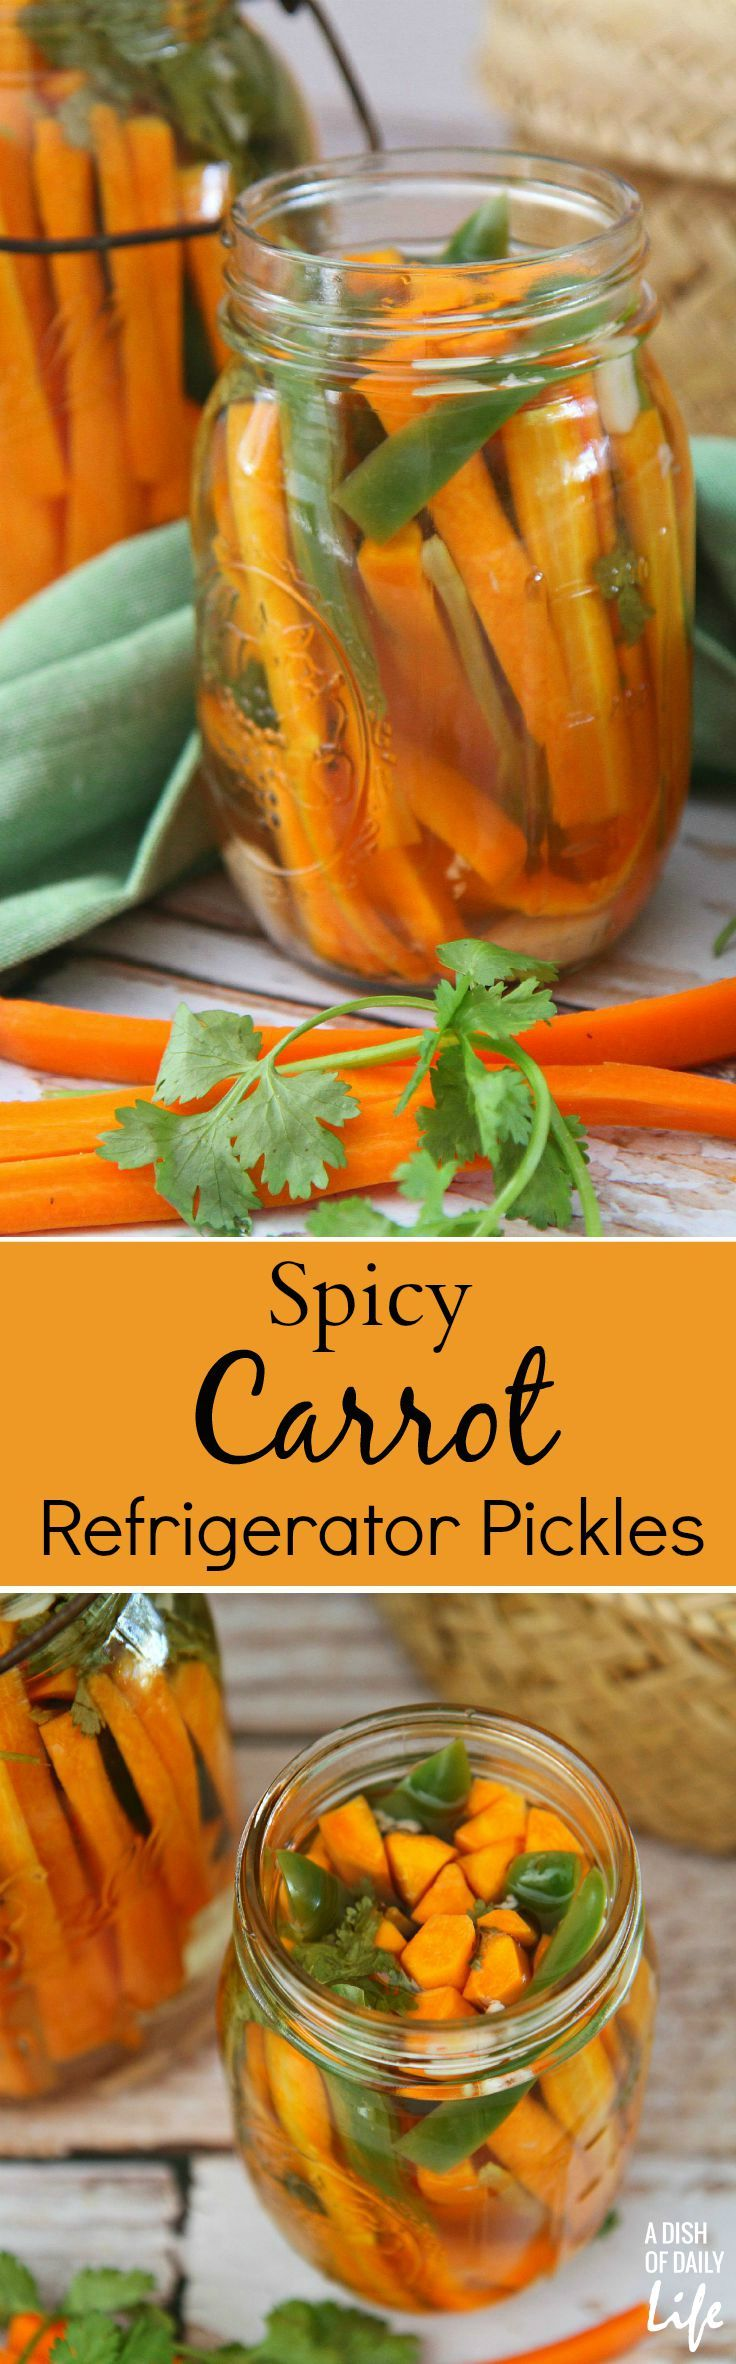 Like Mexican carrots? This spicy carrot refrigerator pickles recipe is easy to make, and will satisfy your hot spicy pickles craving! @DishOfDailyLife : Featured Post on Turn it up Tuesdays